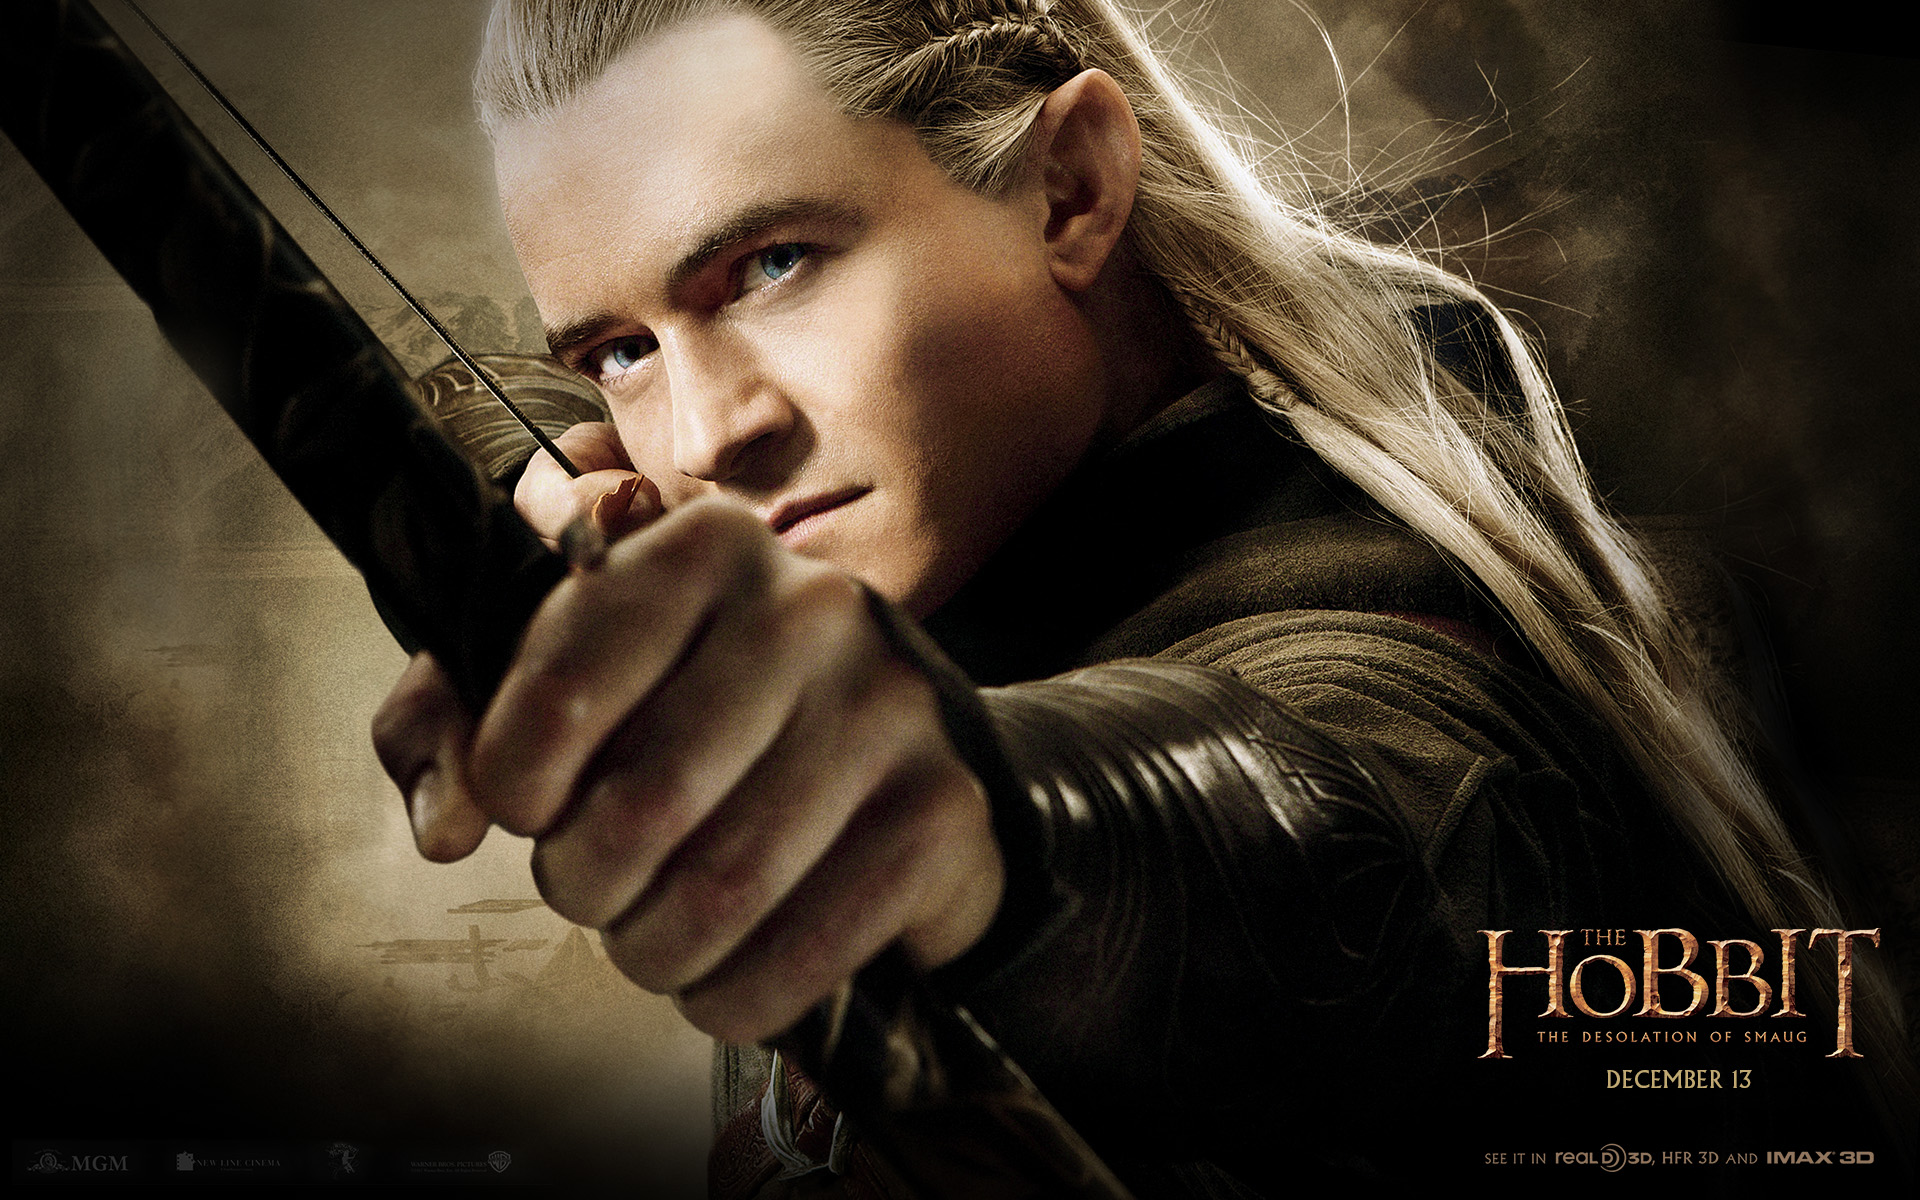 THE HOBBIT: THE DESOLATION OF SMAUG - tauriel & legolas |The Hobbit The Desolation Of Smaug Legolas